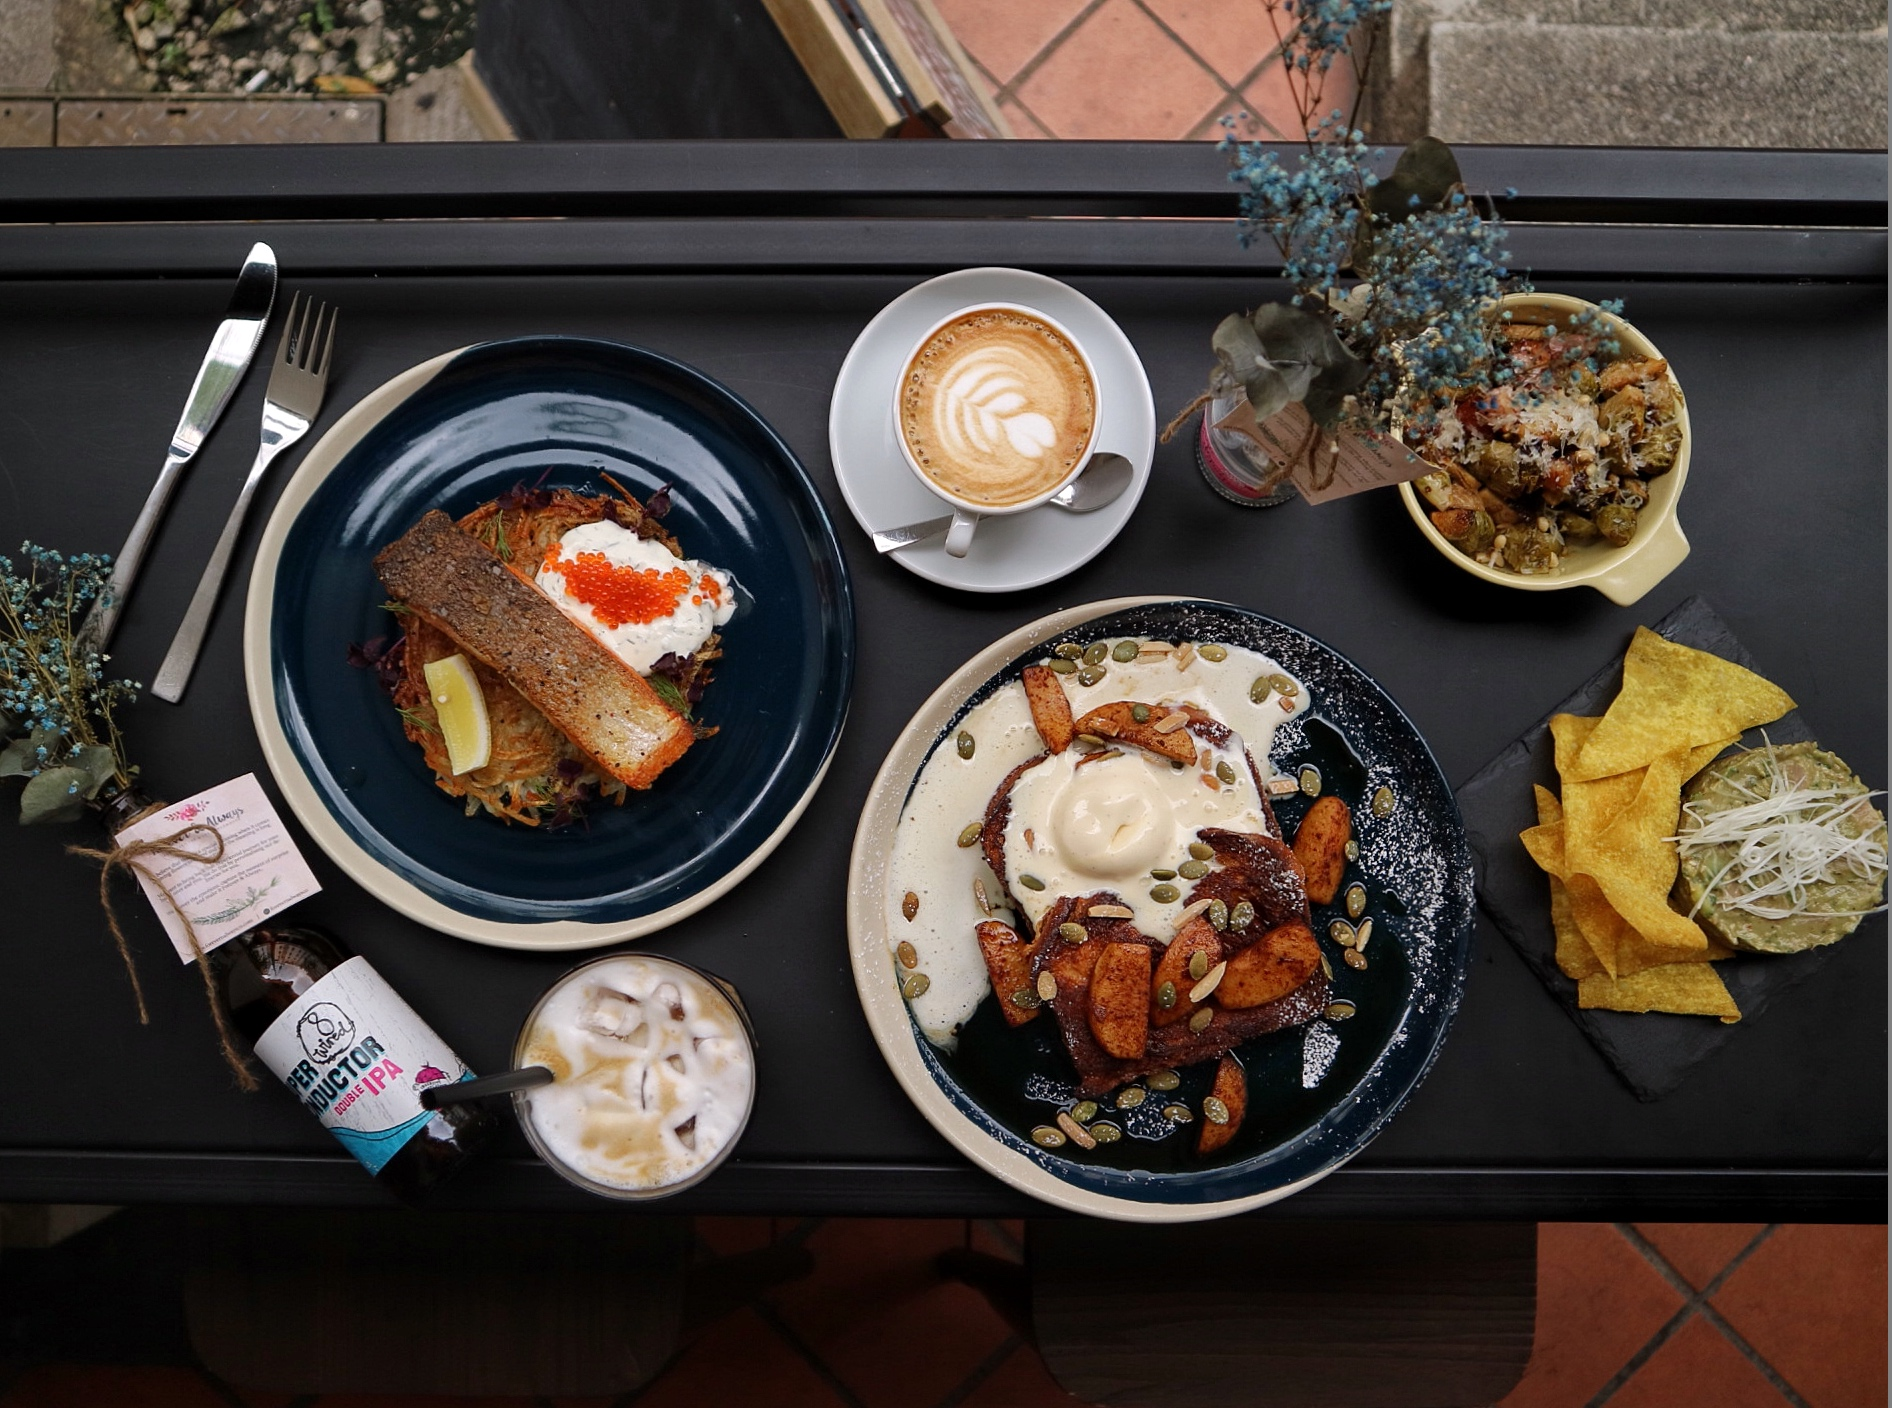 (NEW) Hustle Co: New Café in Tanjong Pagar with Amazing Food and Local Craft Beers